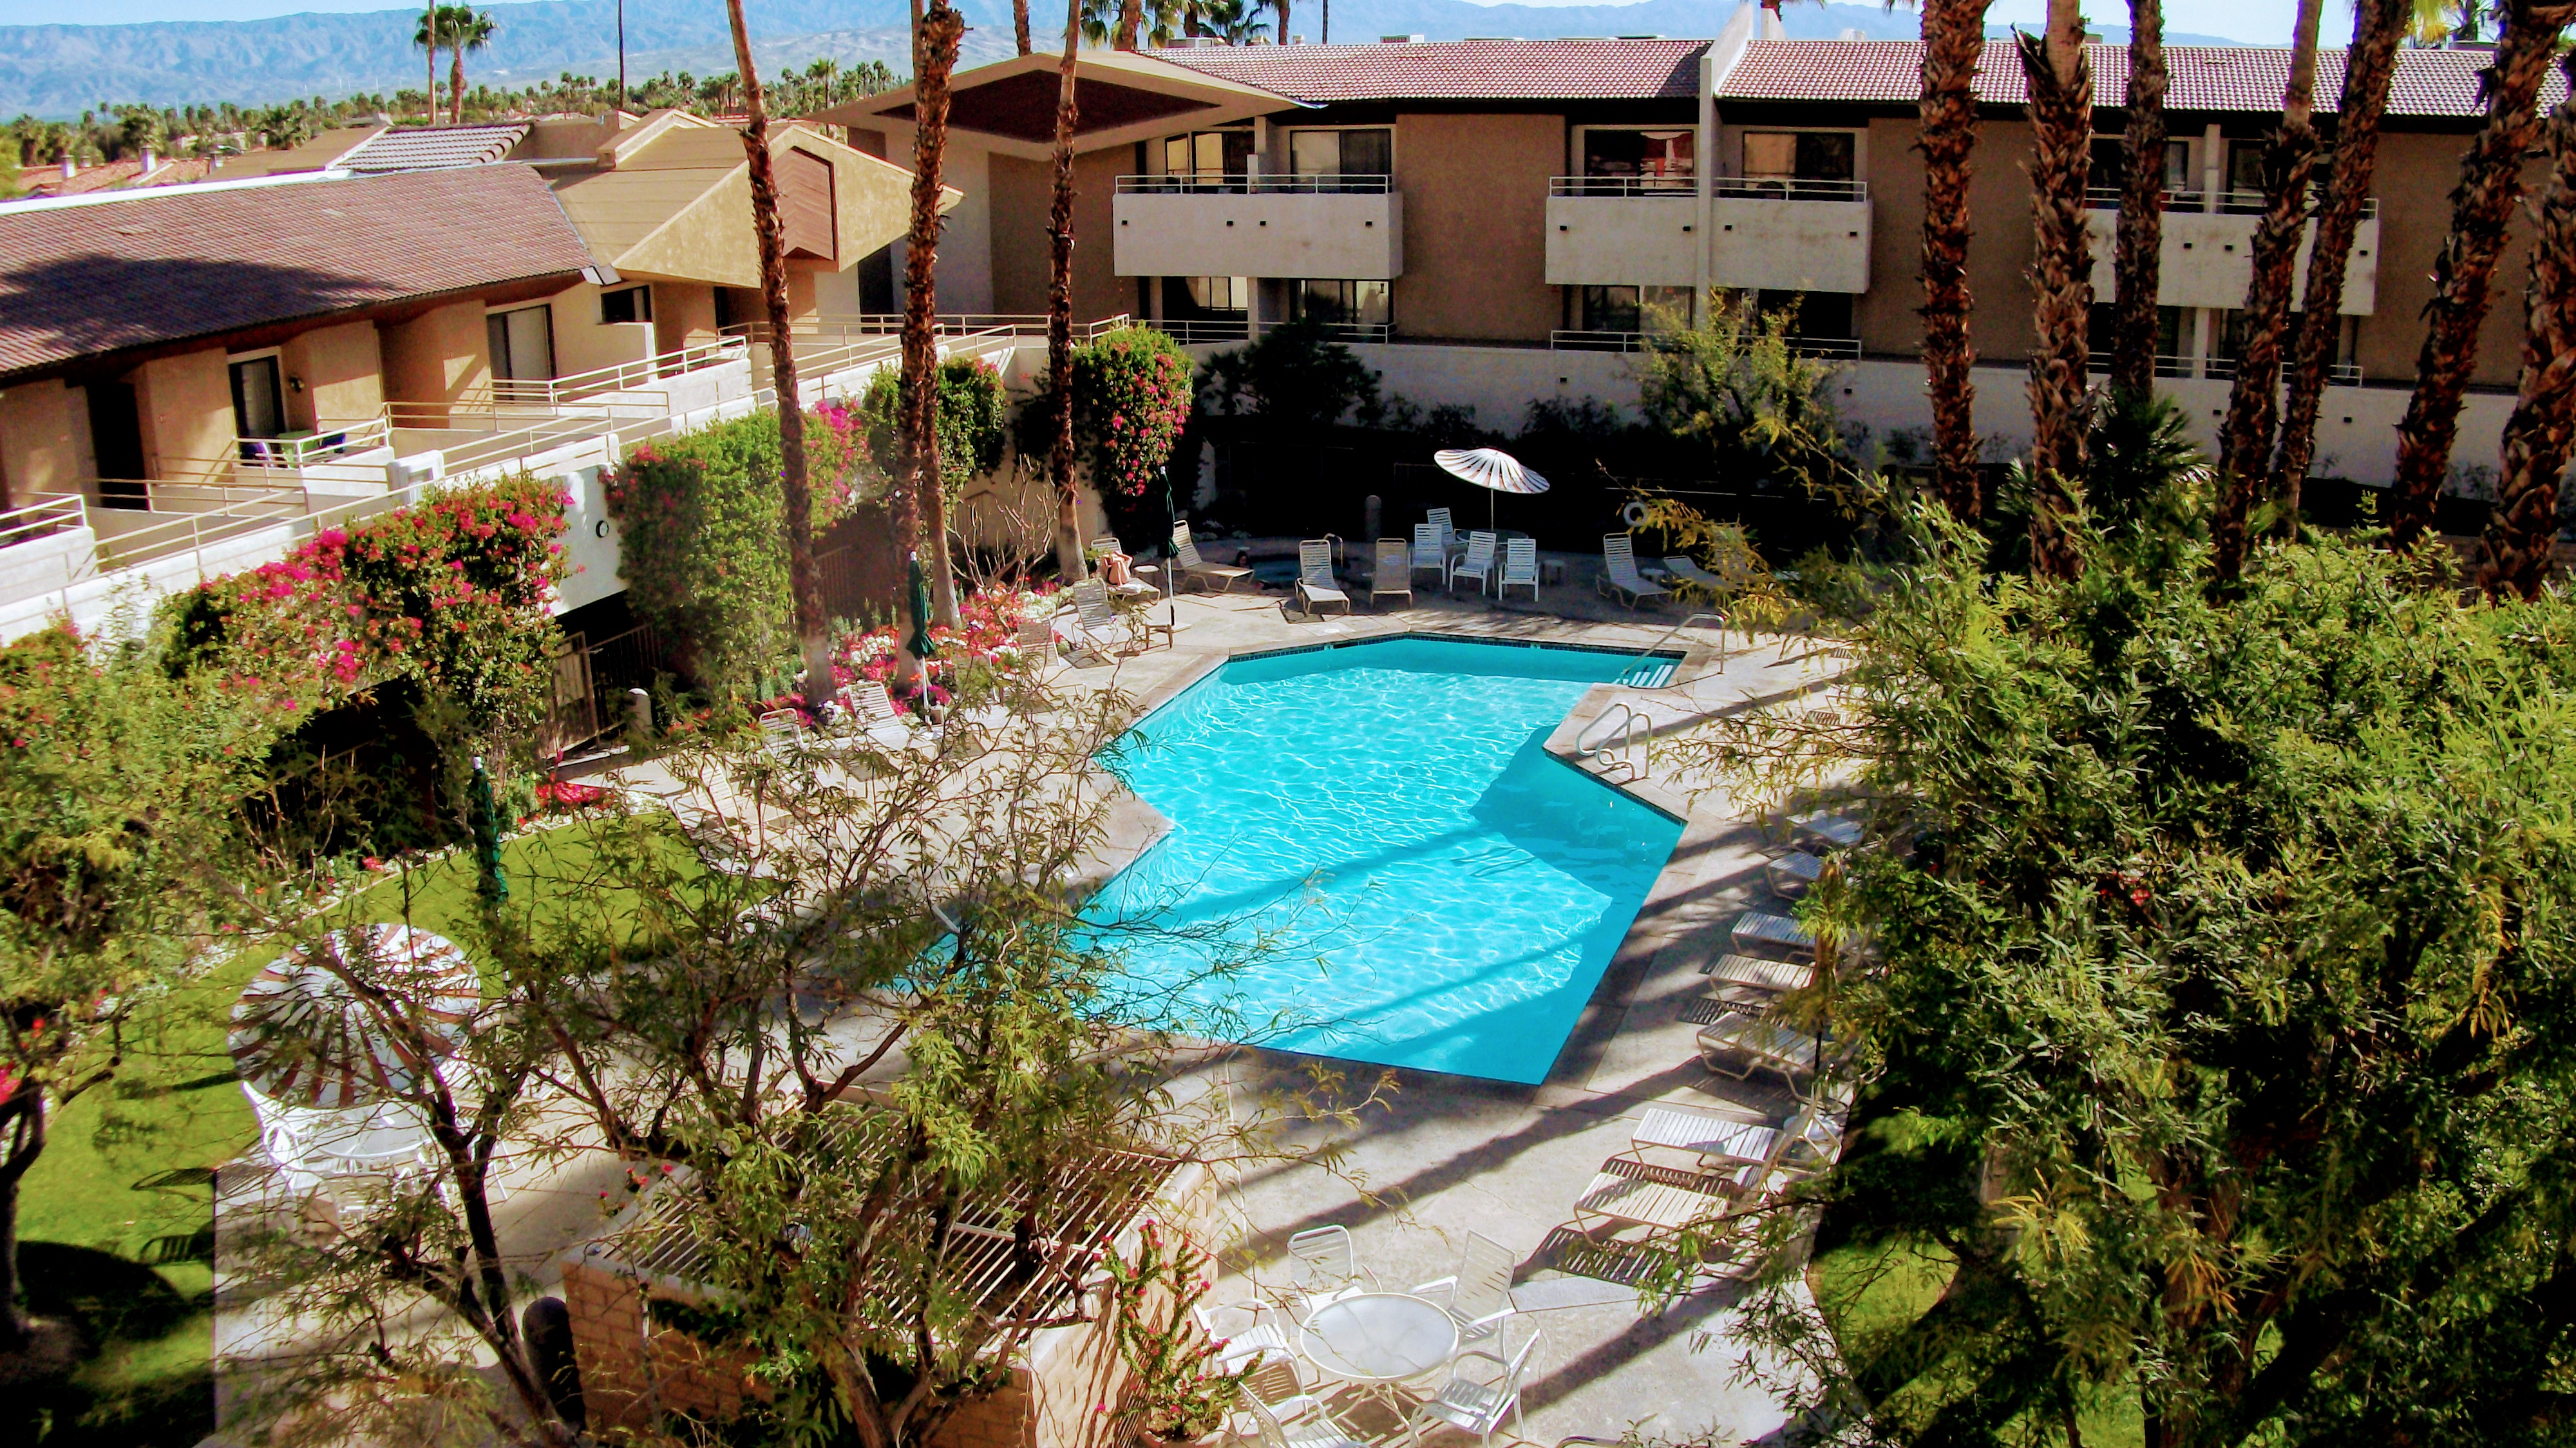 Palm springs condo for sale biarritz downtown palm for Palm springs for sale by owner